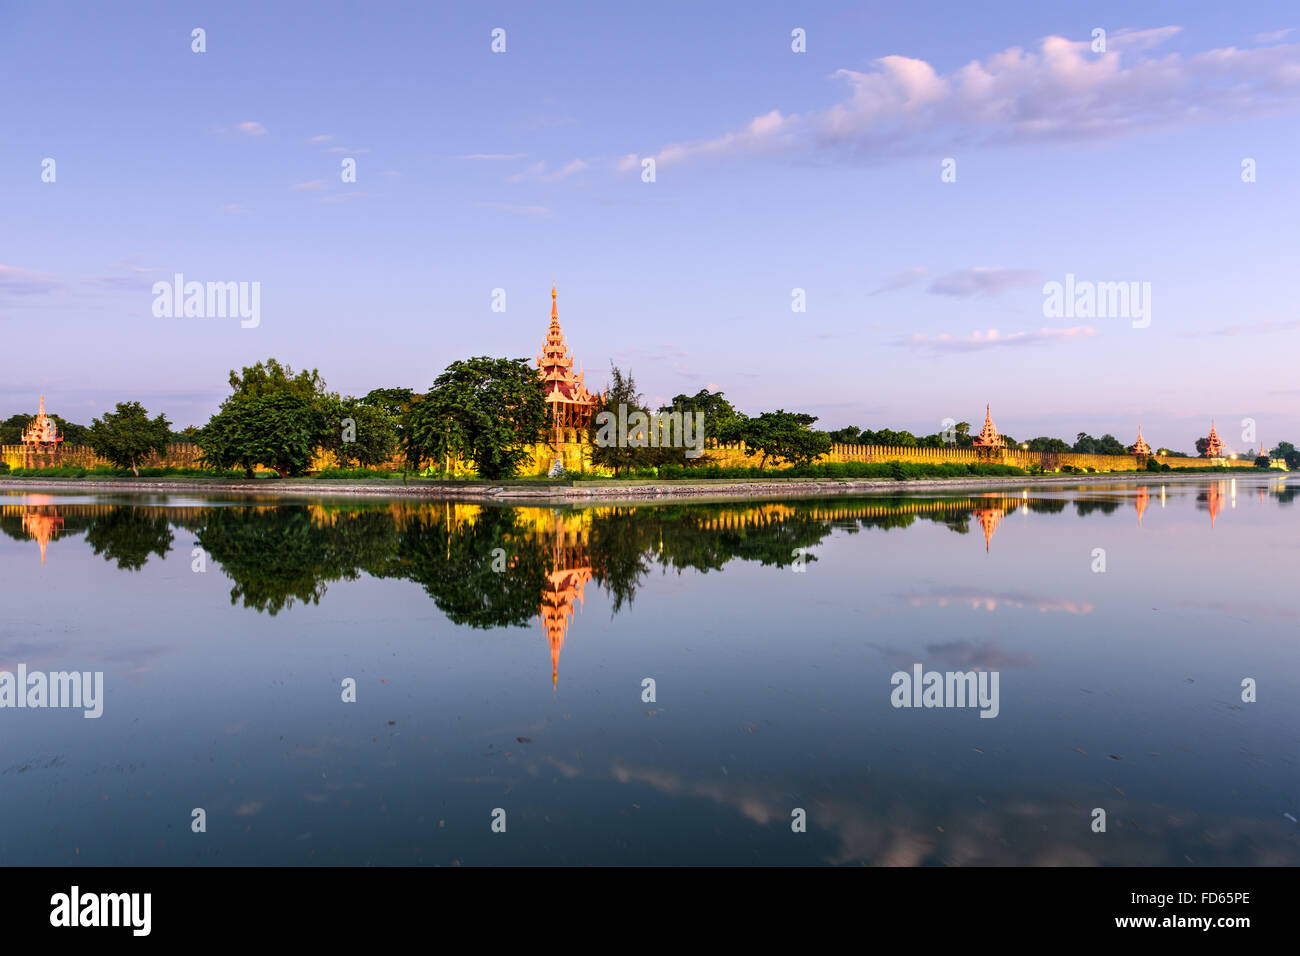 Mandalay, Myanmar at the castle moat. - Stock Image